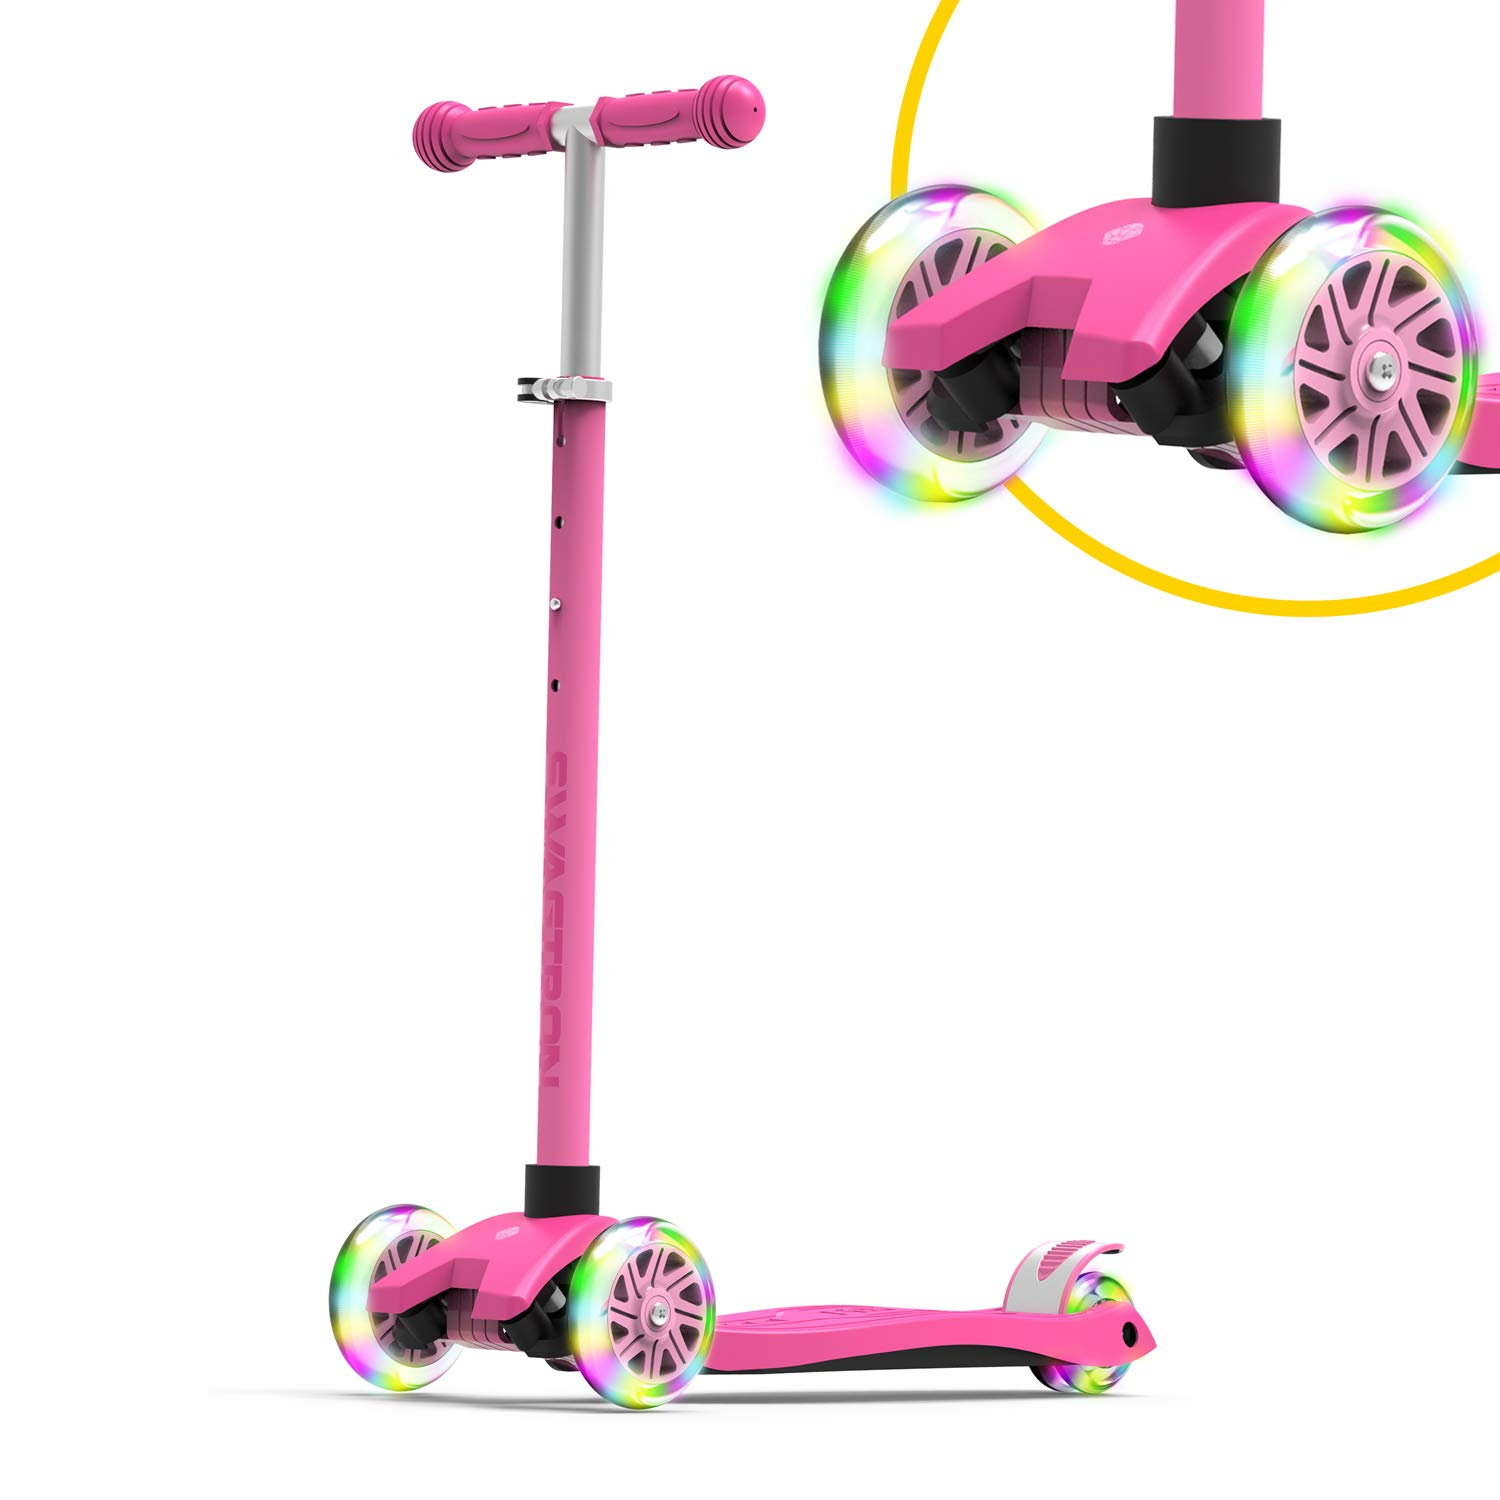 Swagtron K5 3-Wheel Kids Scooter with Light-Up Wheels | Quick Assembly | ASTM-Certified | Height-Adjustable for Boys or Girls Ages 3+ (Pink)